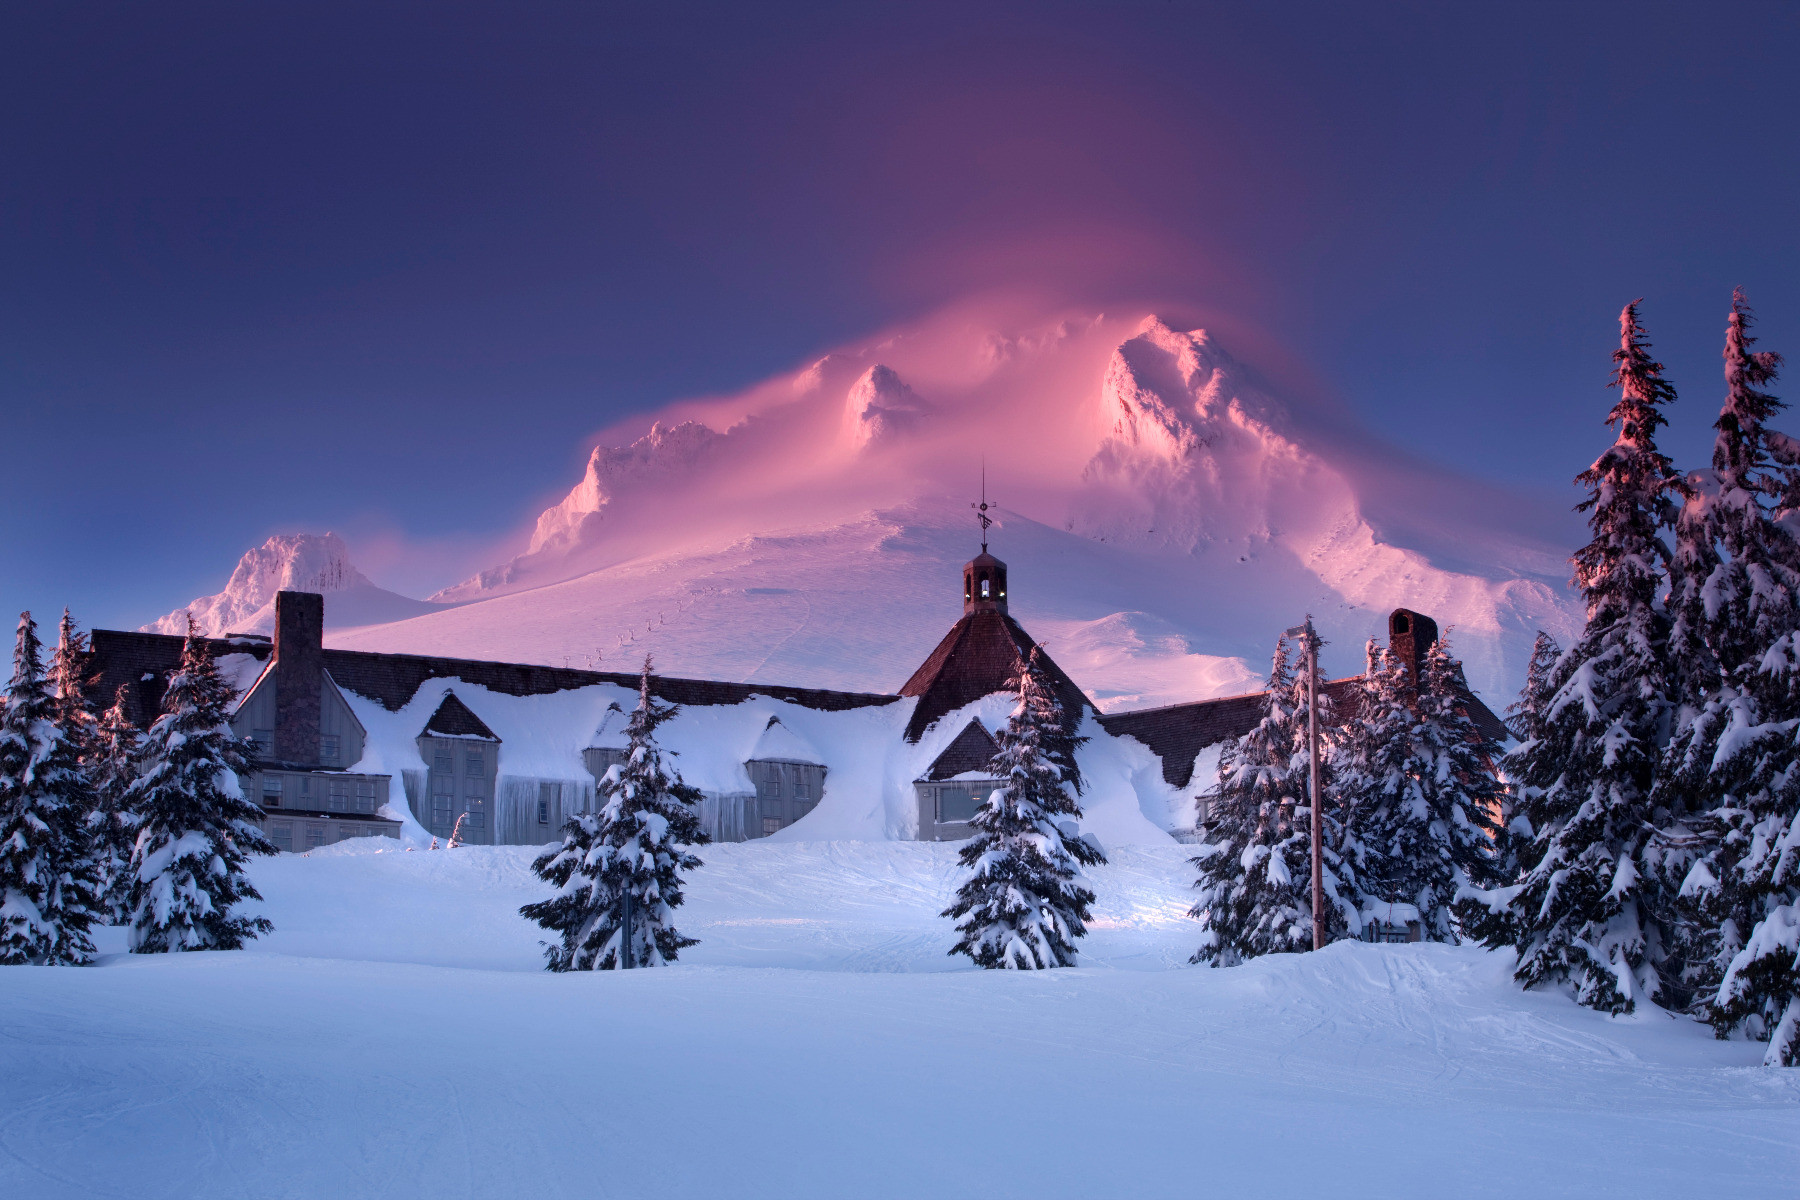 Timberline Lodgeundefined